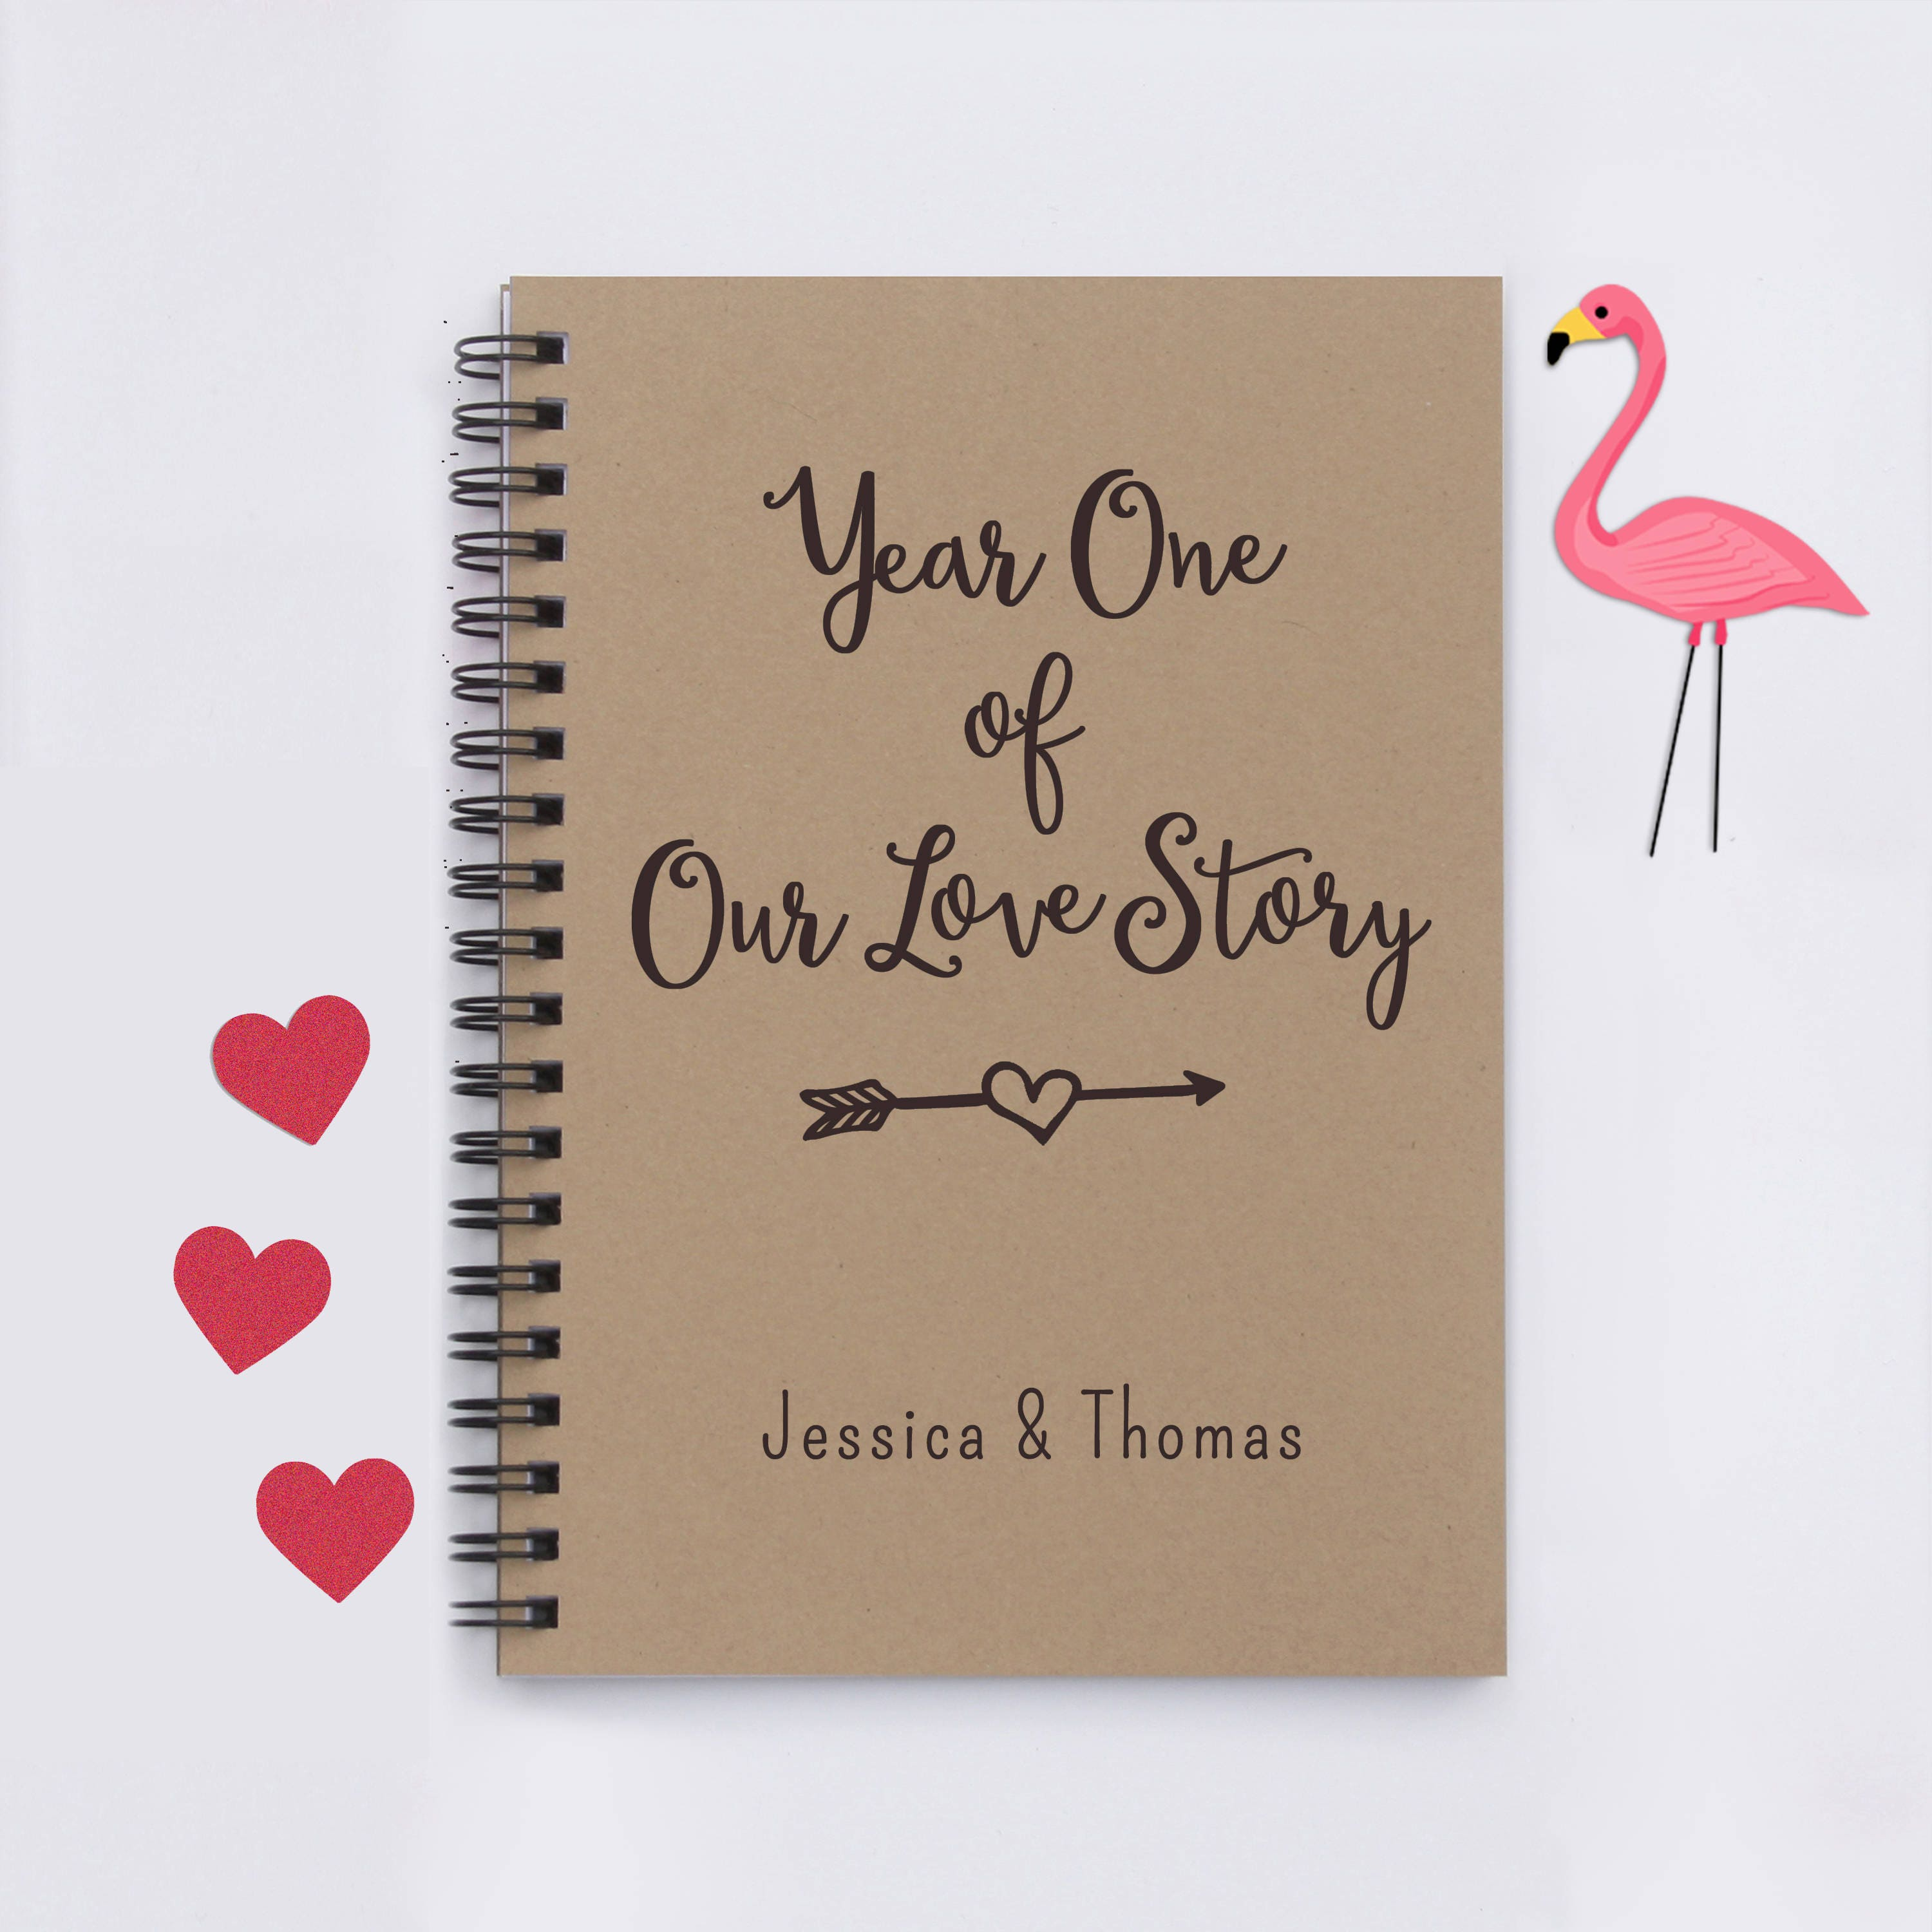 Scrapbook ideas for boyfriend - Personalized Year One Of Our Love Story 5 X7 Journal Writing Journal Notebook Diary Memory Book Scrapbook Gift For Boyfriend Gift